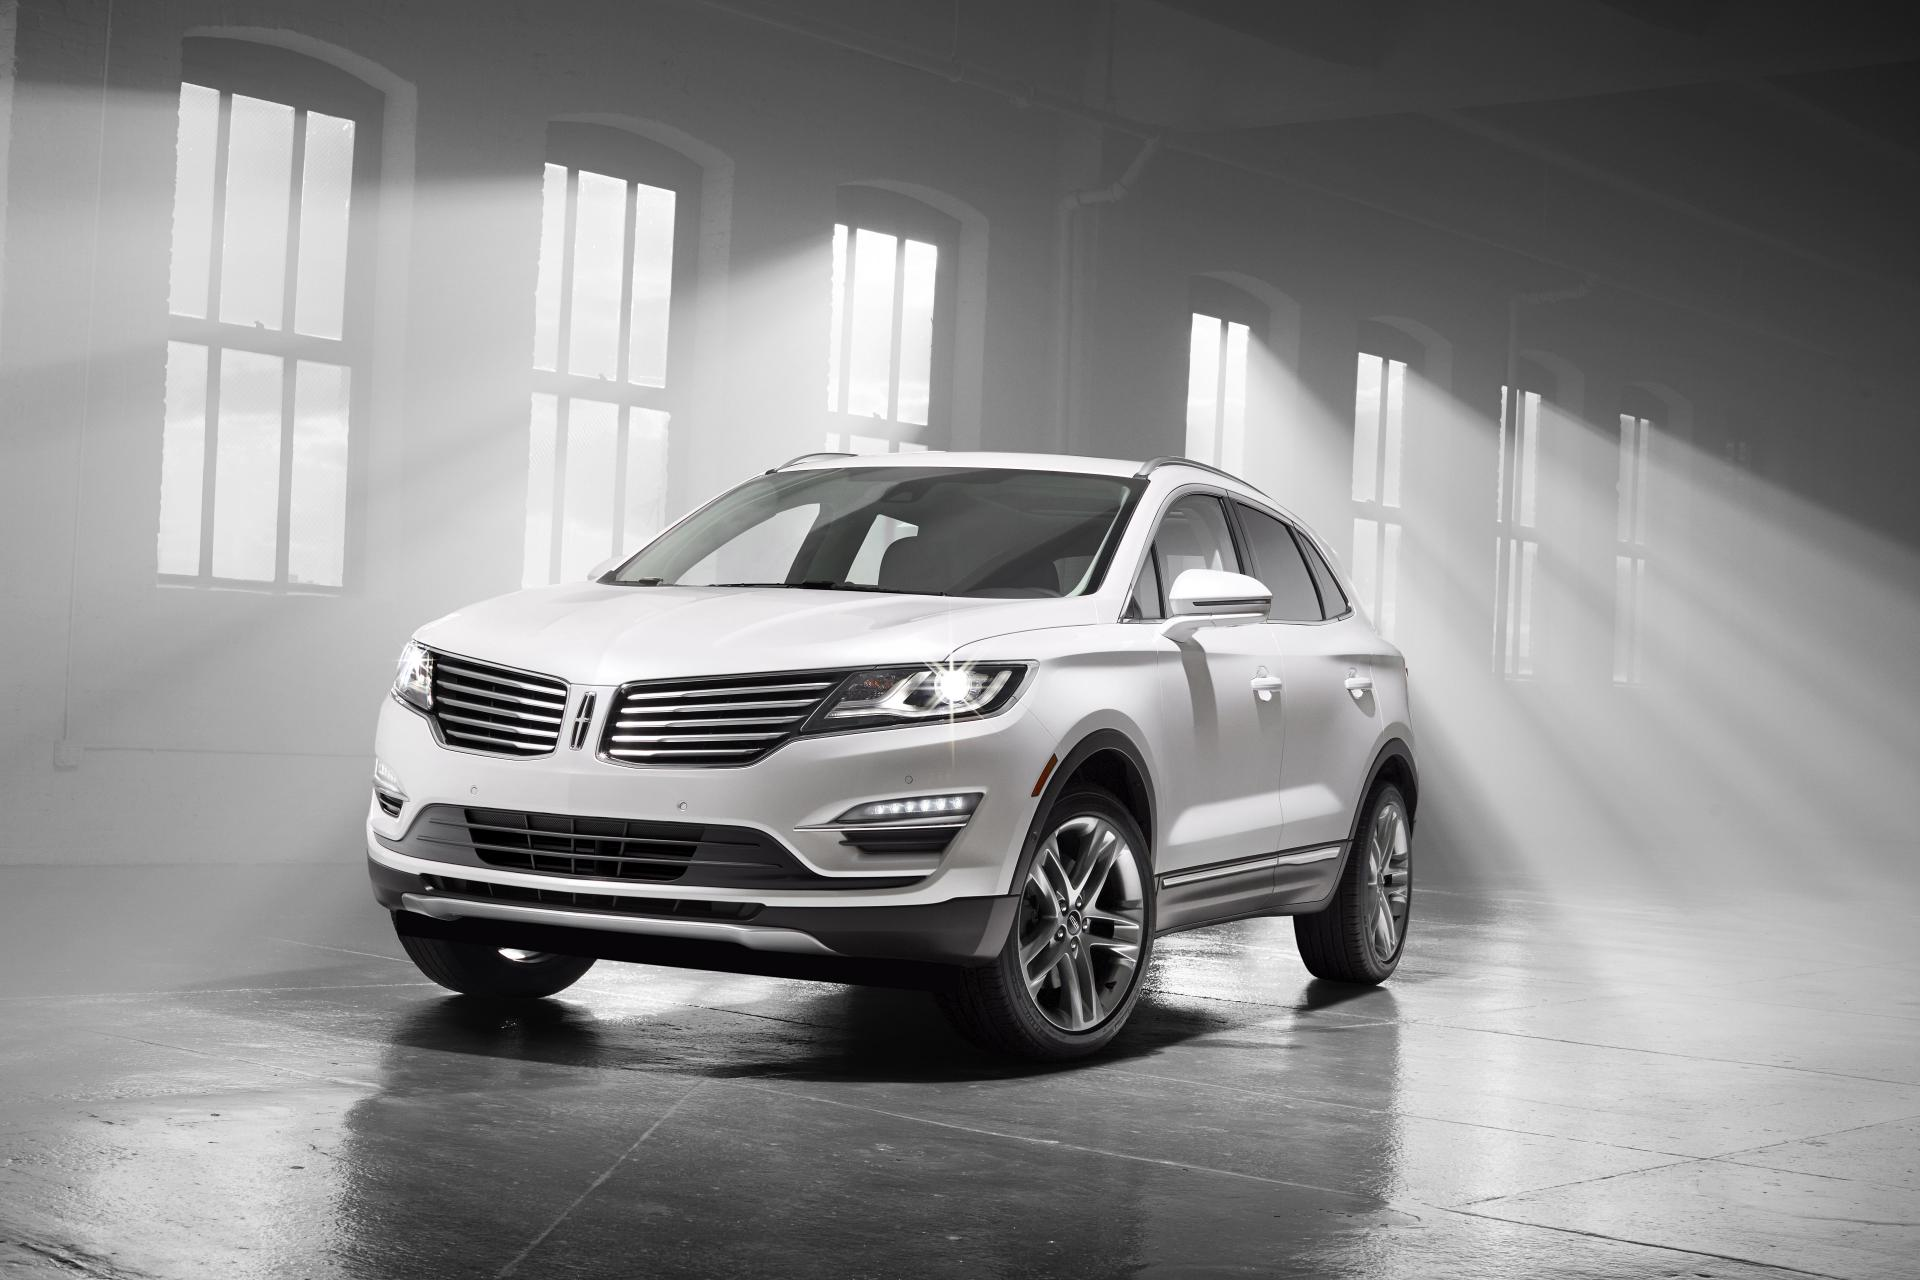 lincoln mkc information specs pictures wallpaper